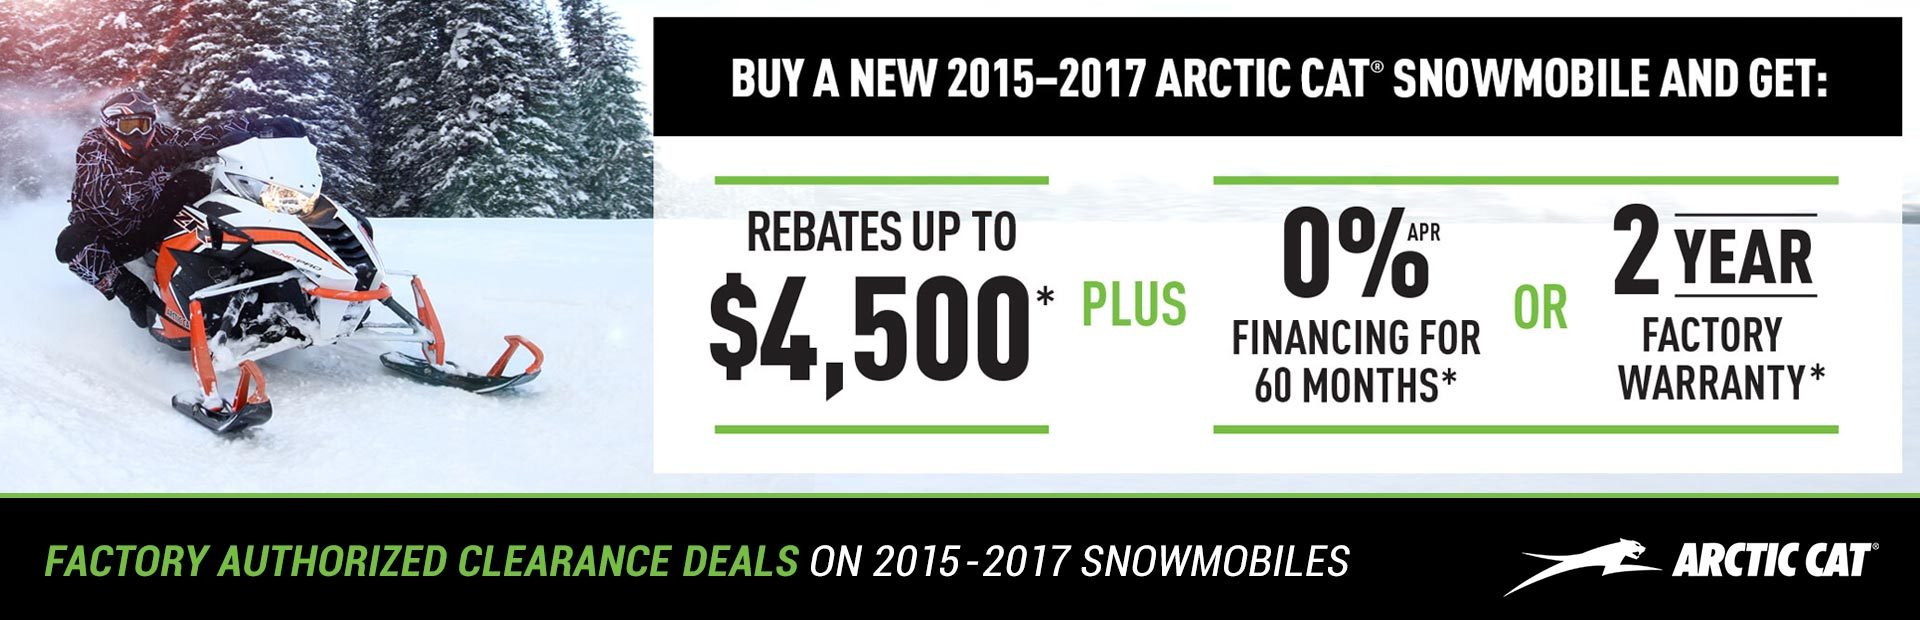 Factory Authorized Clearance 2015-2017 Snowmobiles